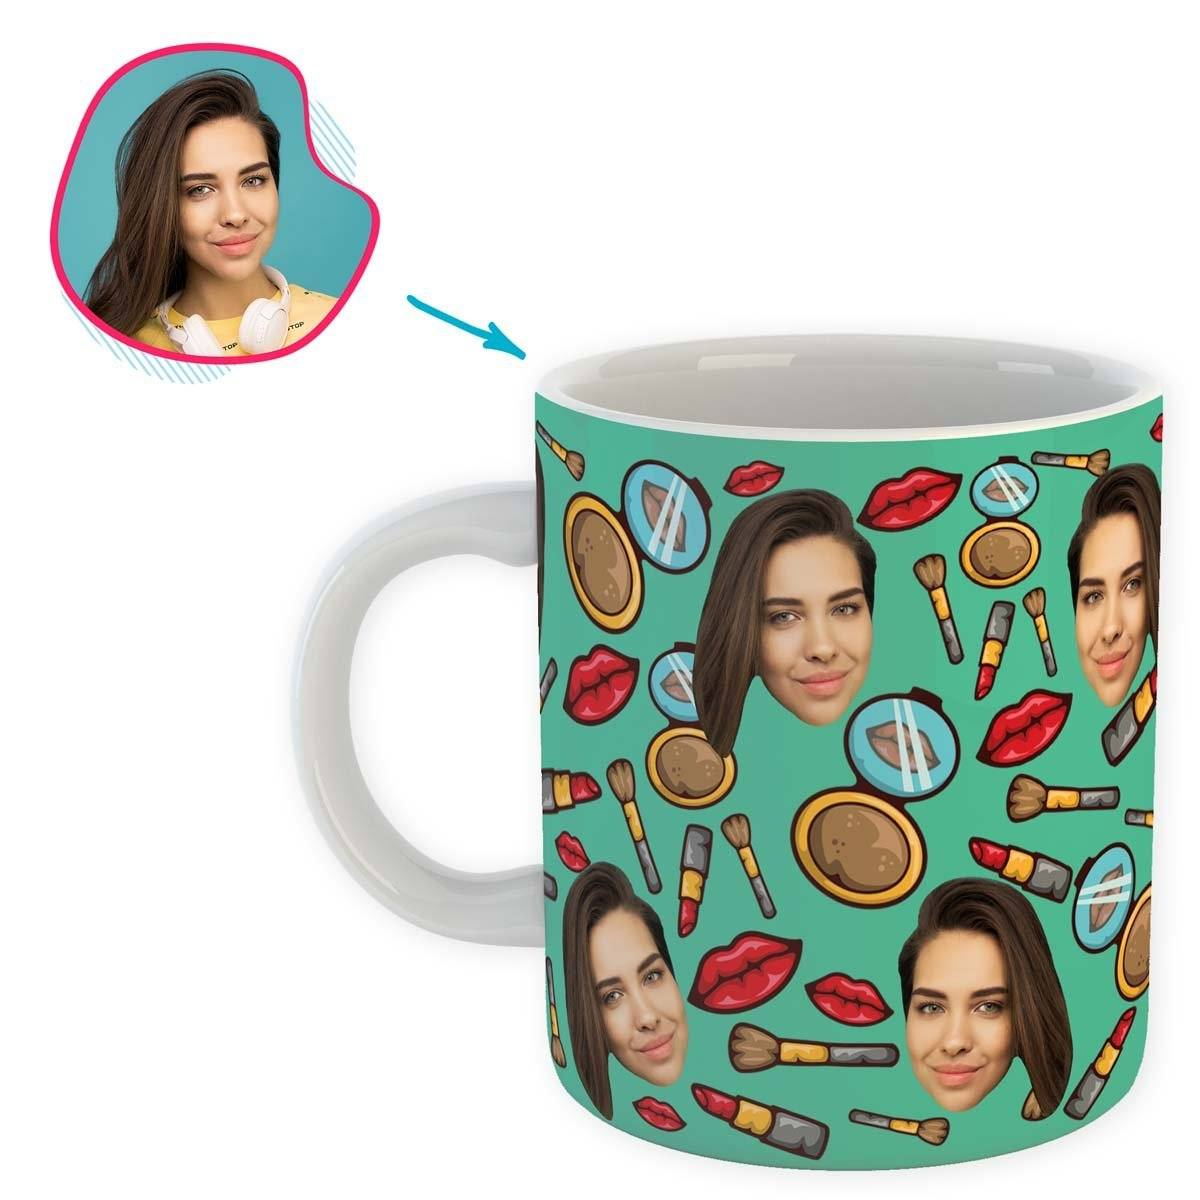 Mint Makeup personalized mug with photo of face printed on it